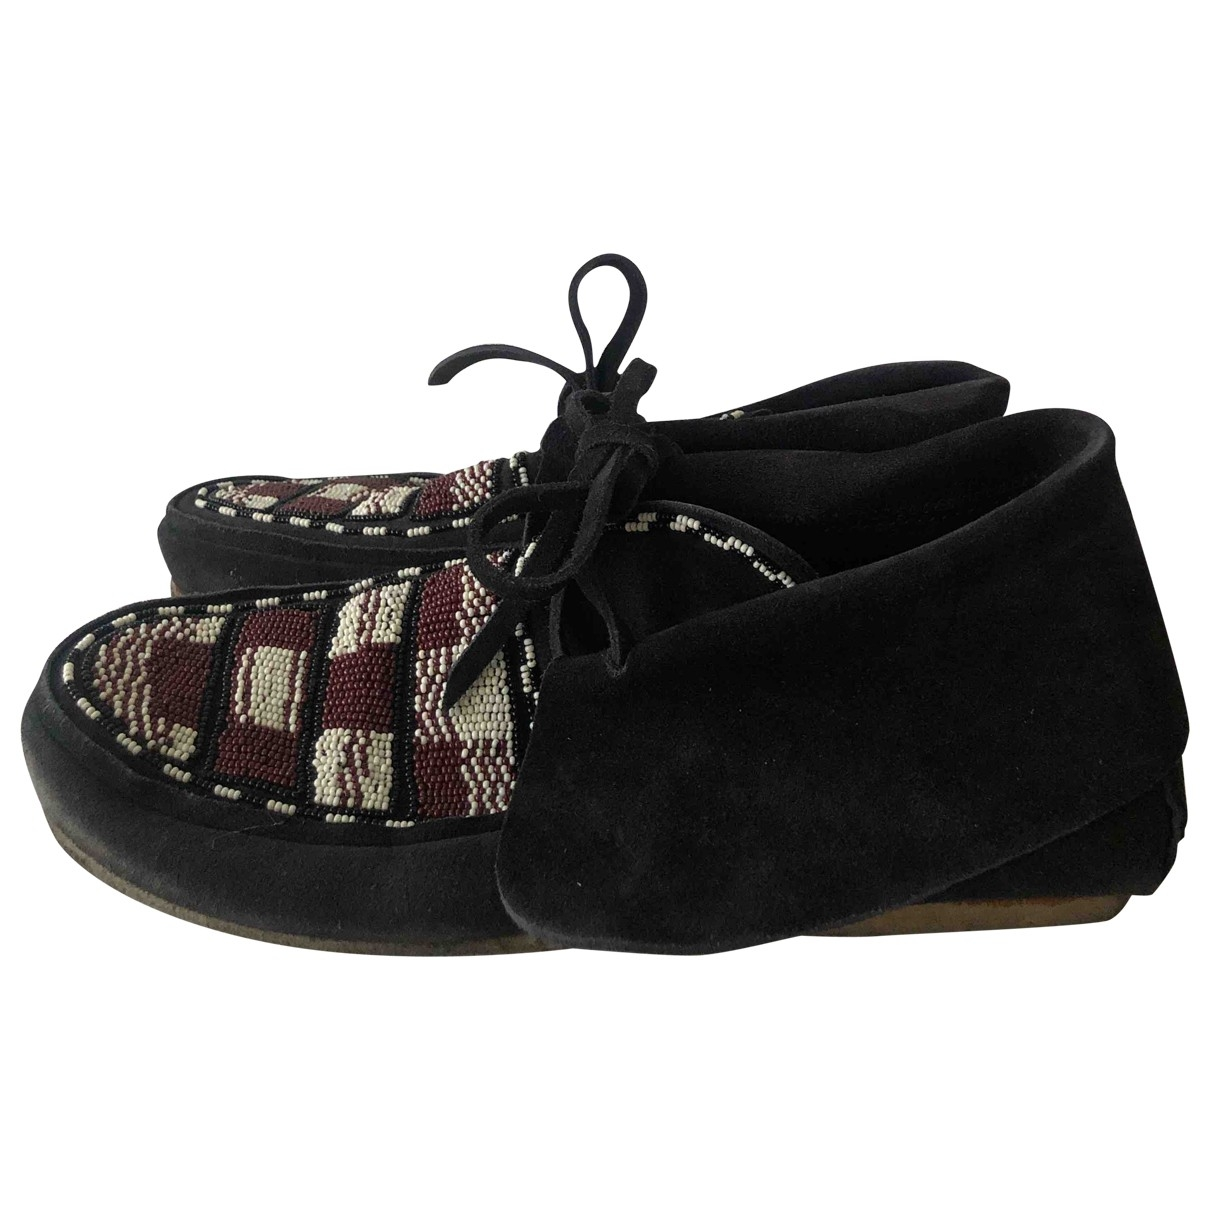 Isabel Marant \N Black Leather Flats for Women 39 EU